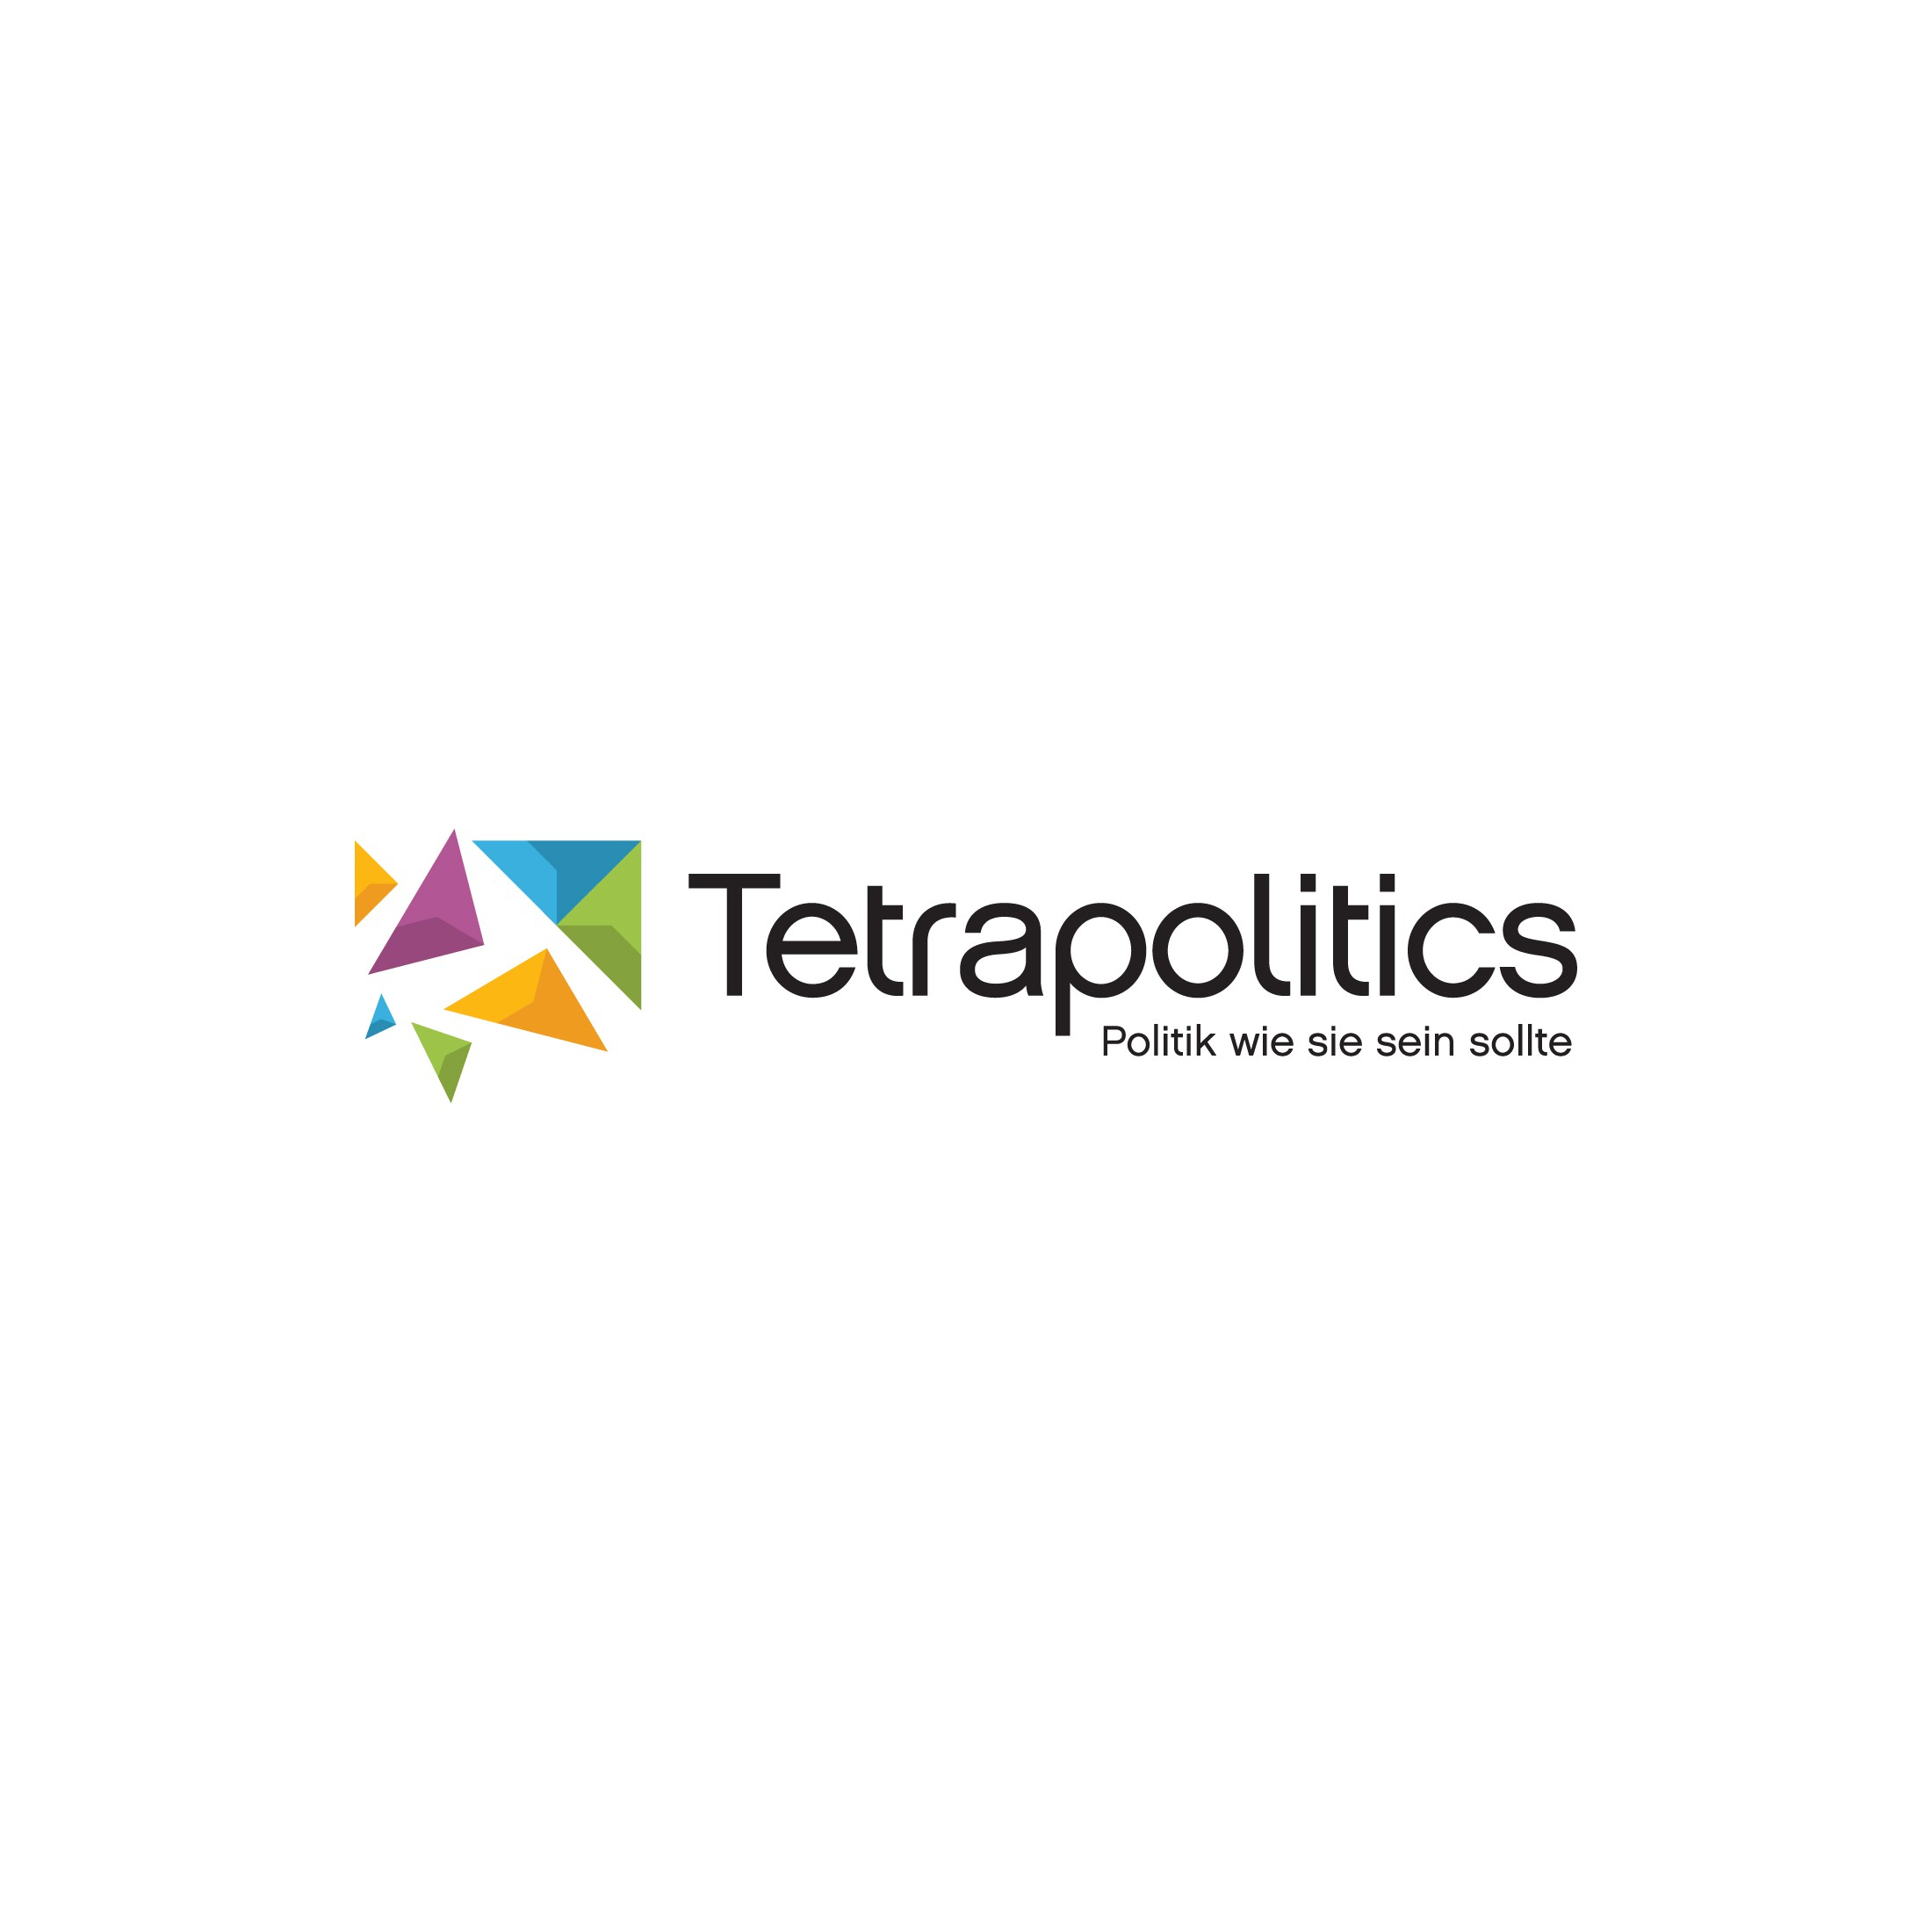 Logo for startup that makes political mobile apps